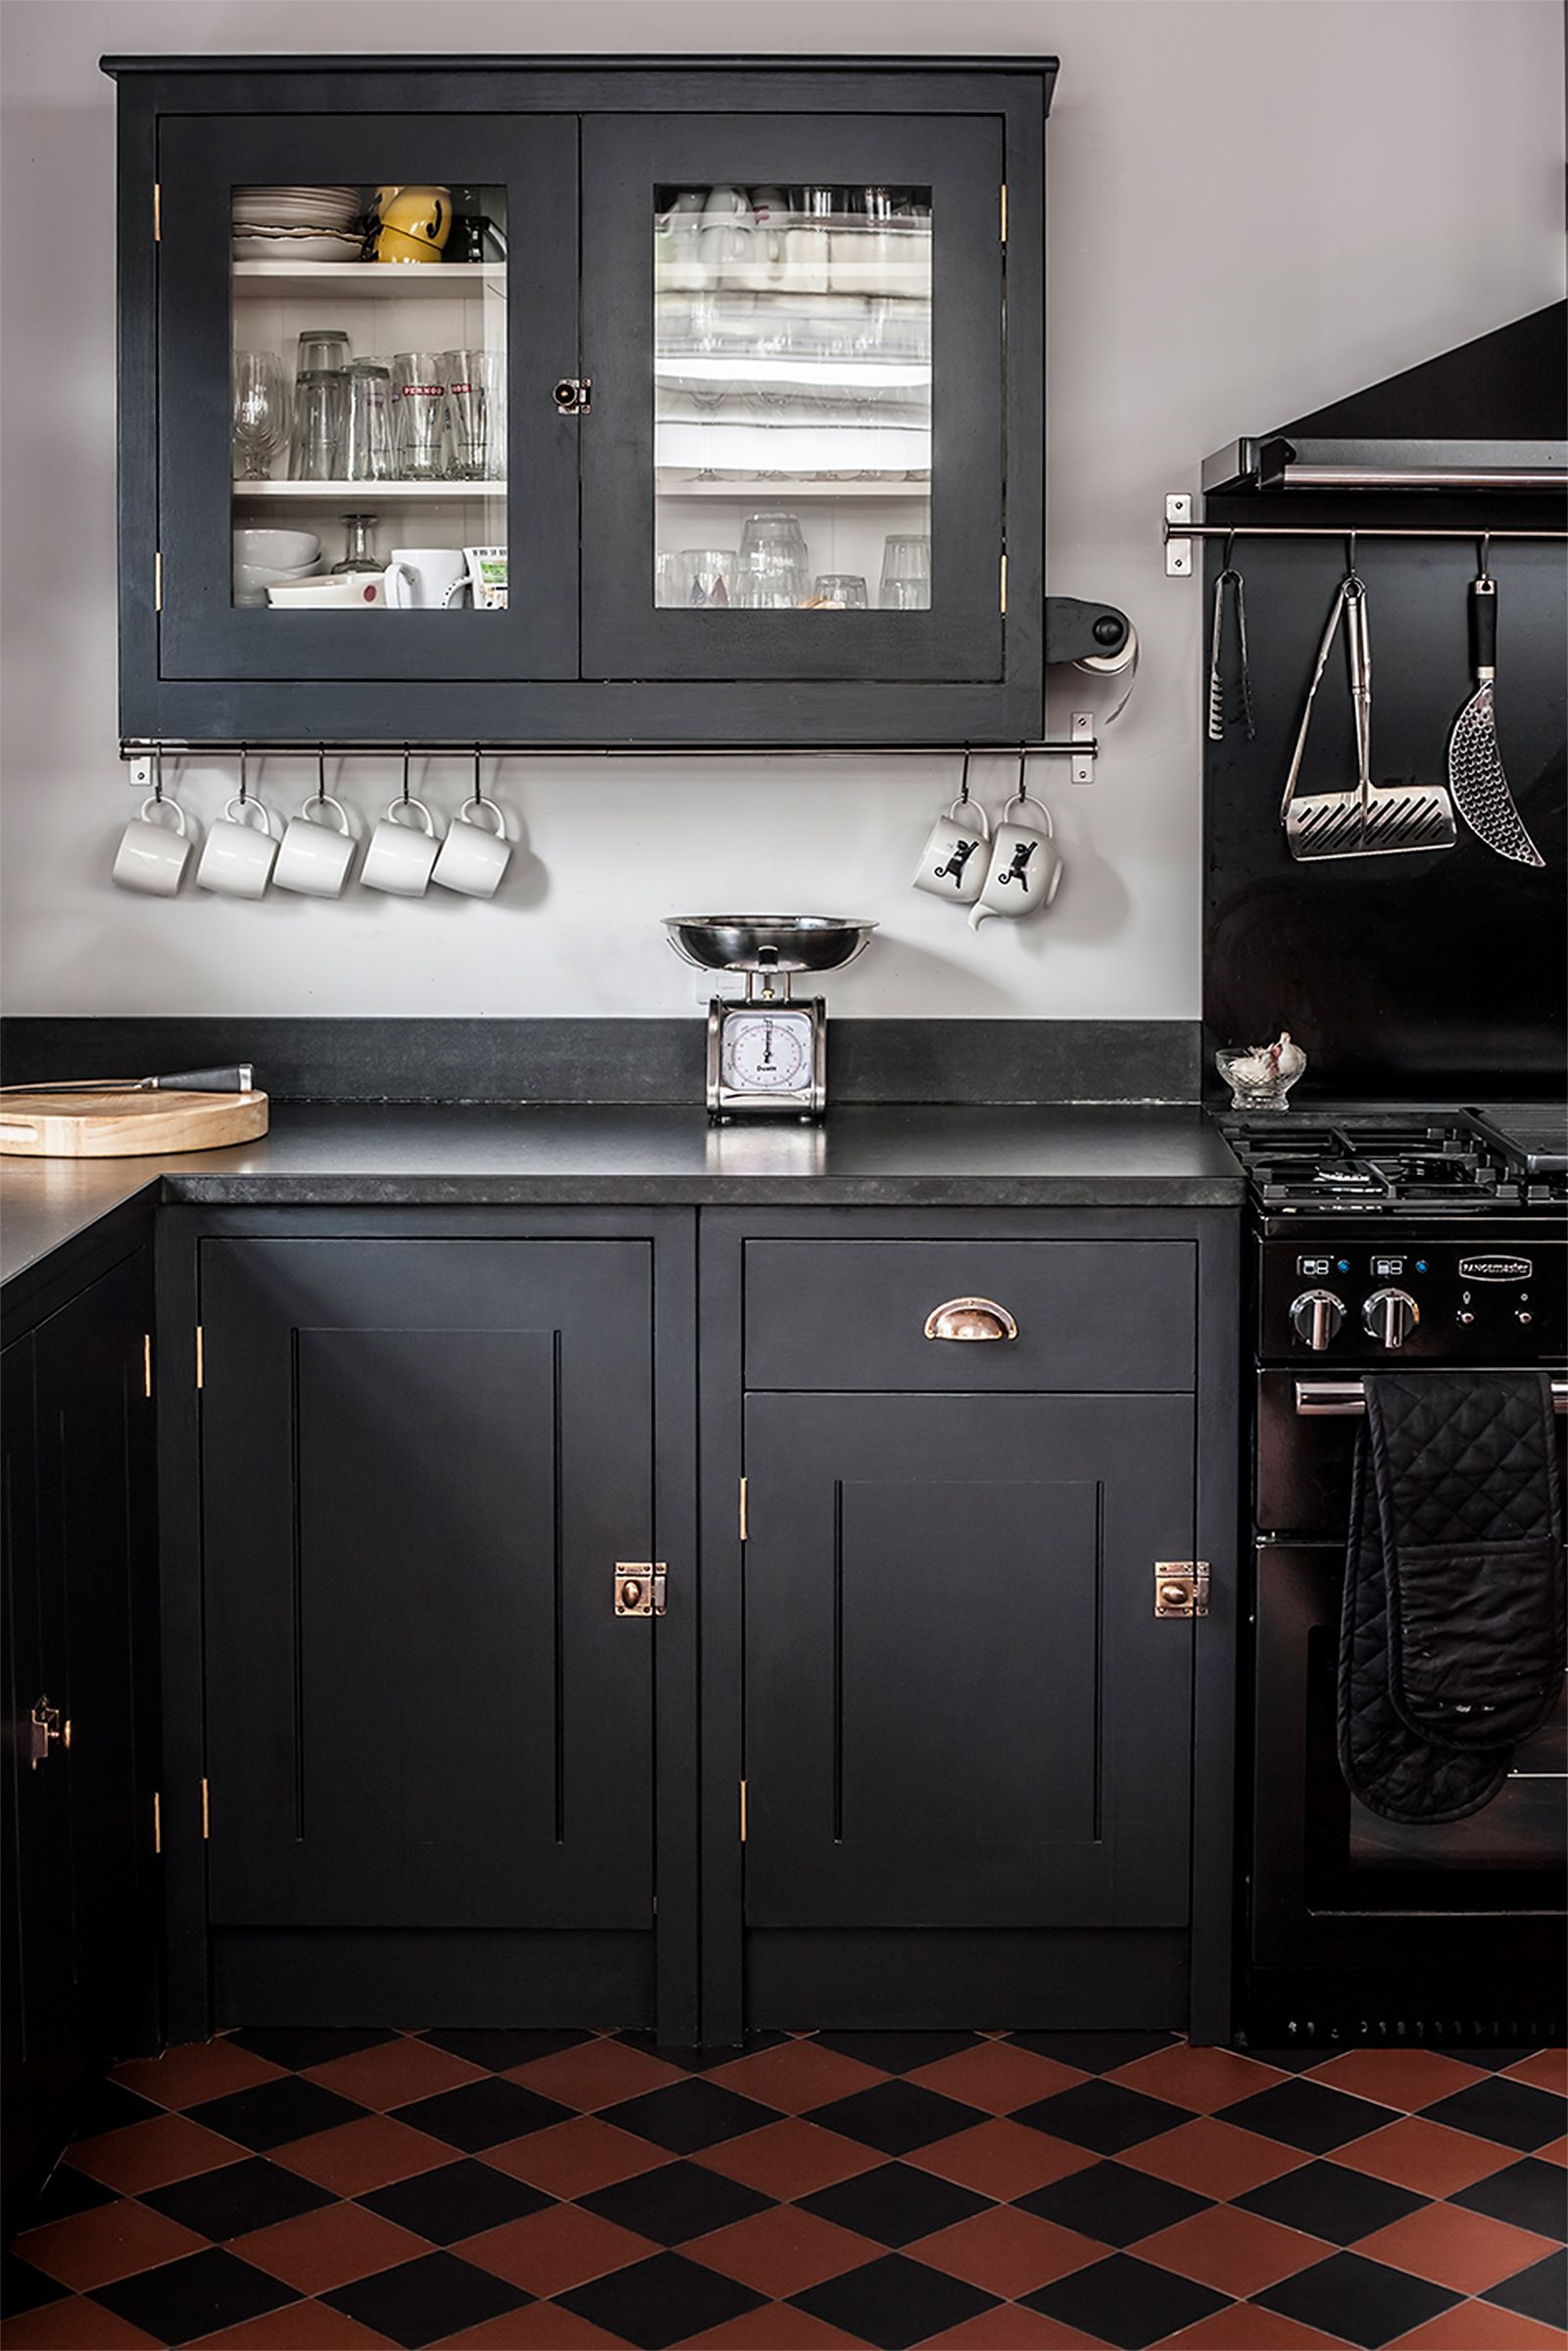 Beautiful Kitchens Magazine Alexis Hamilton Photographys Shoot For British Standard Cupboards